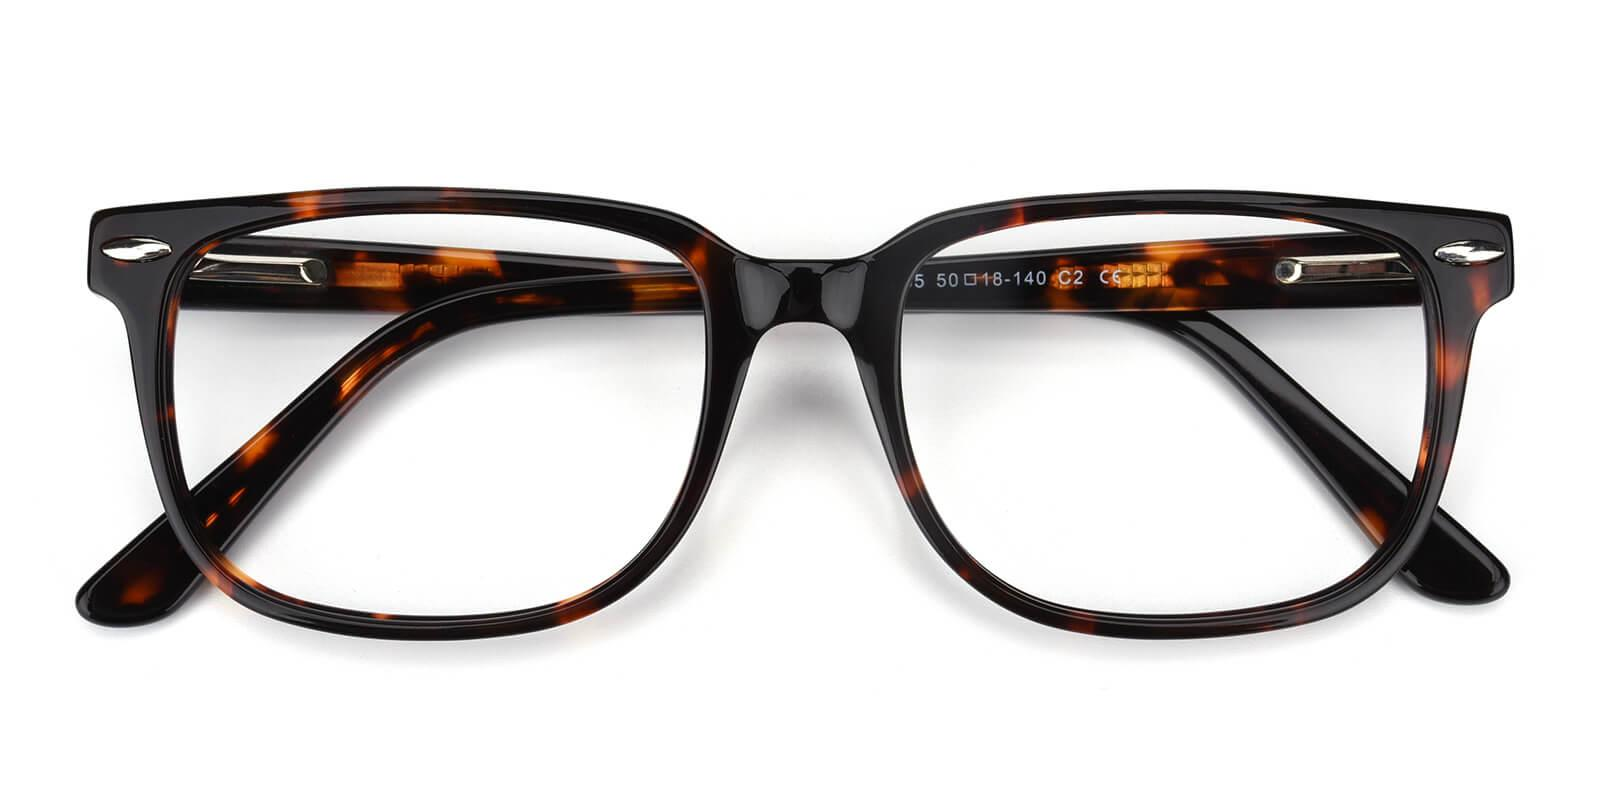 Tempiry-Pattern-Rectangle-Acetate-Eyeglasses-detail